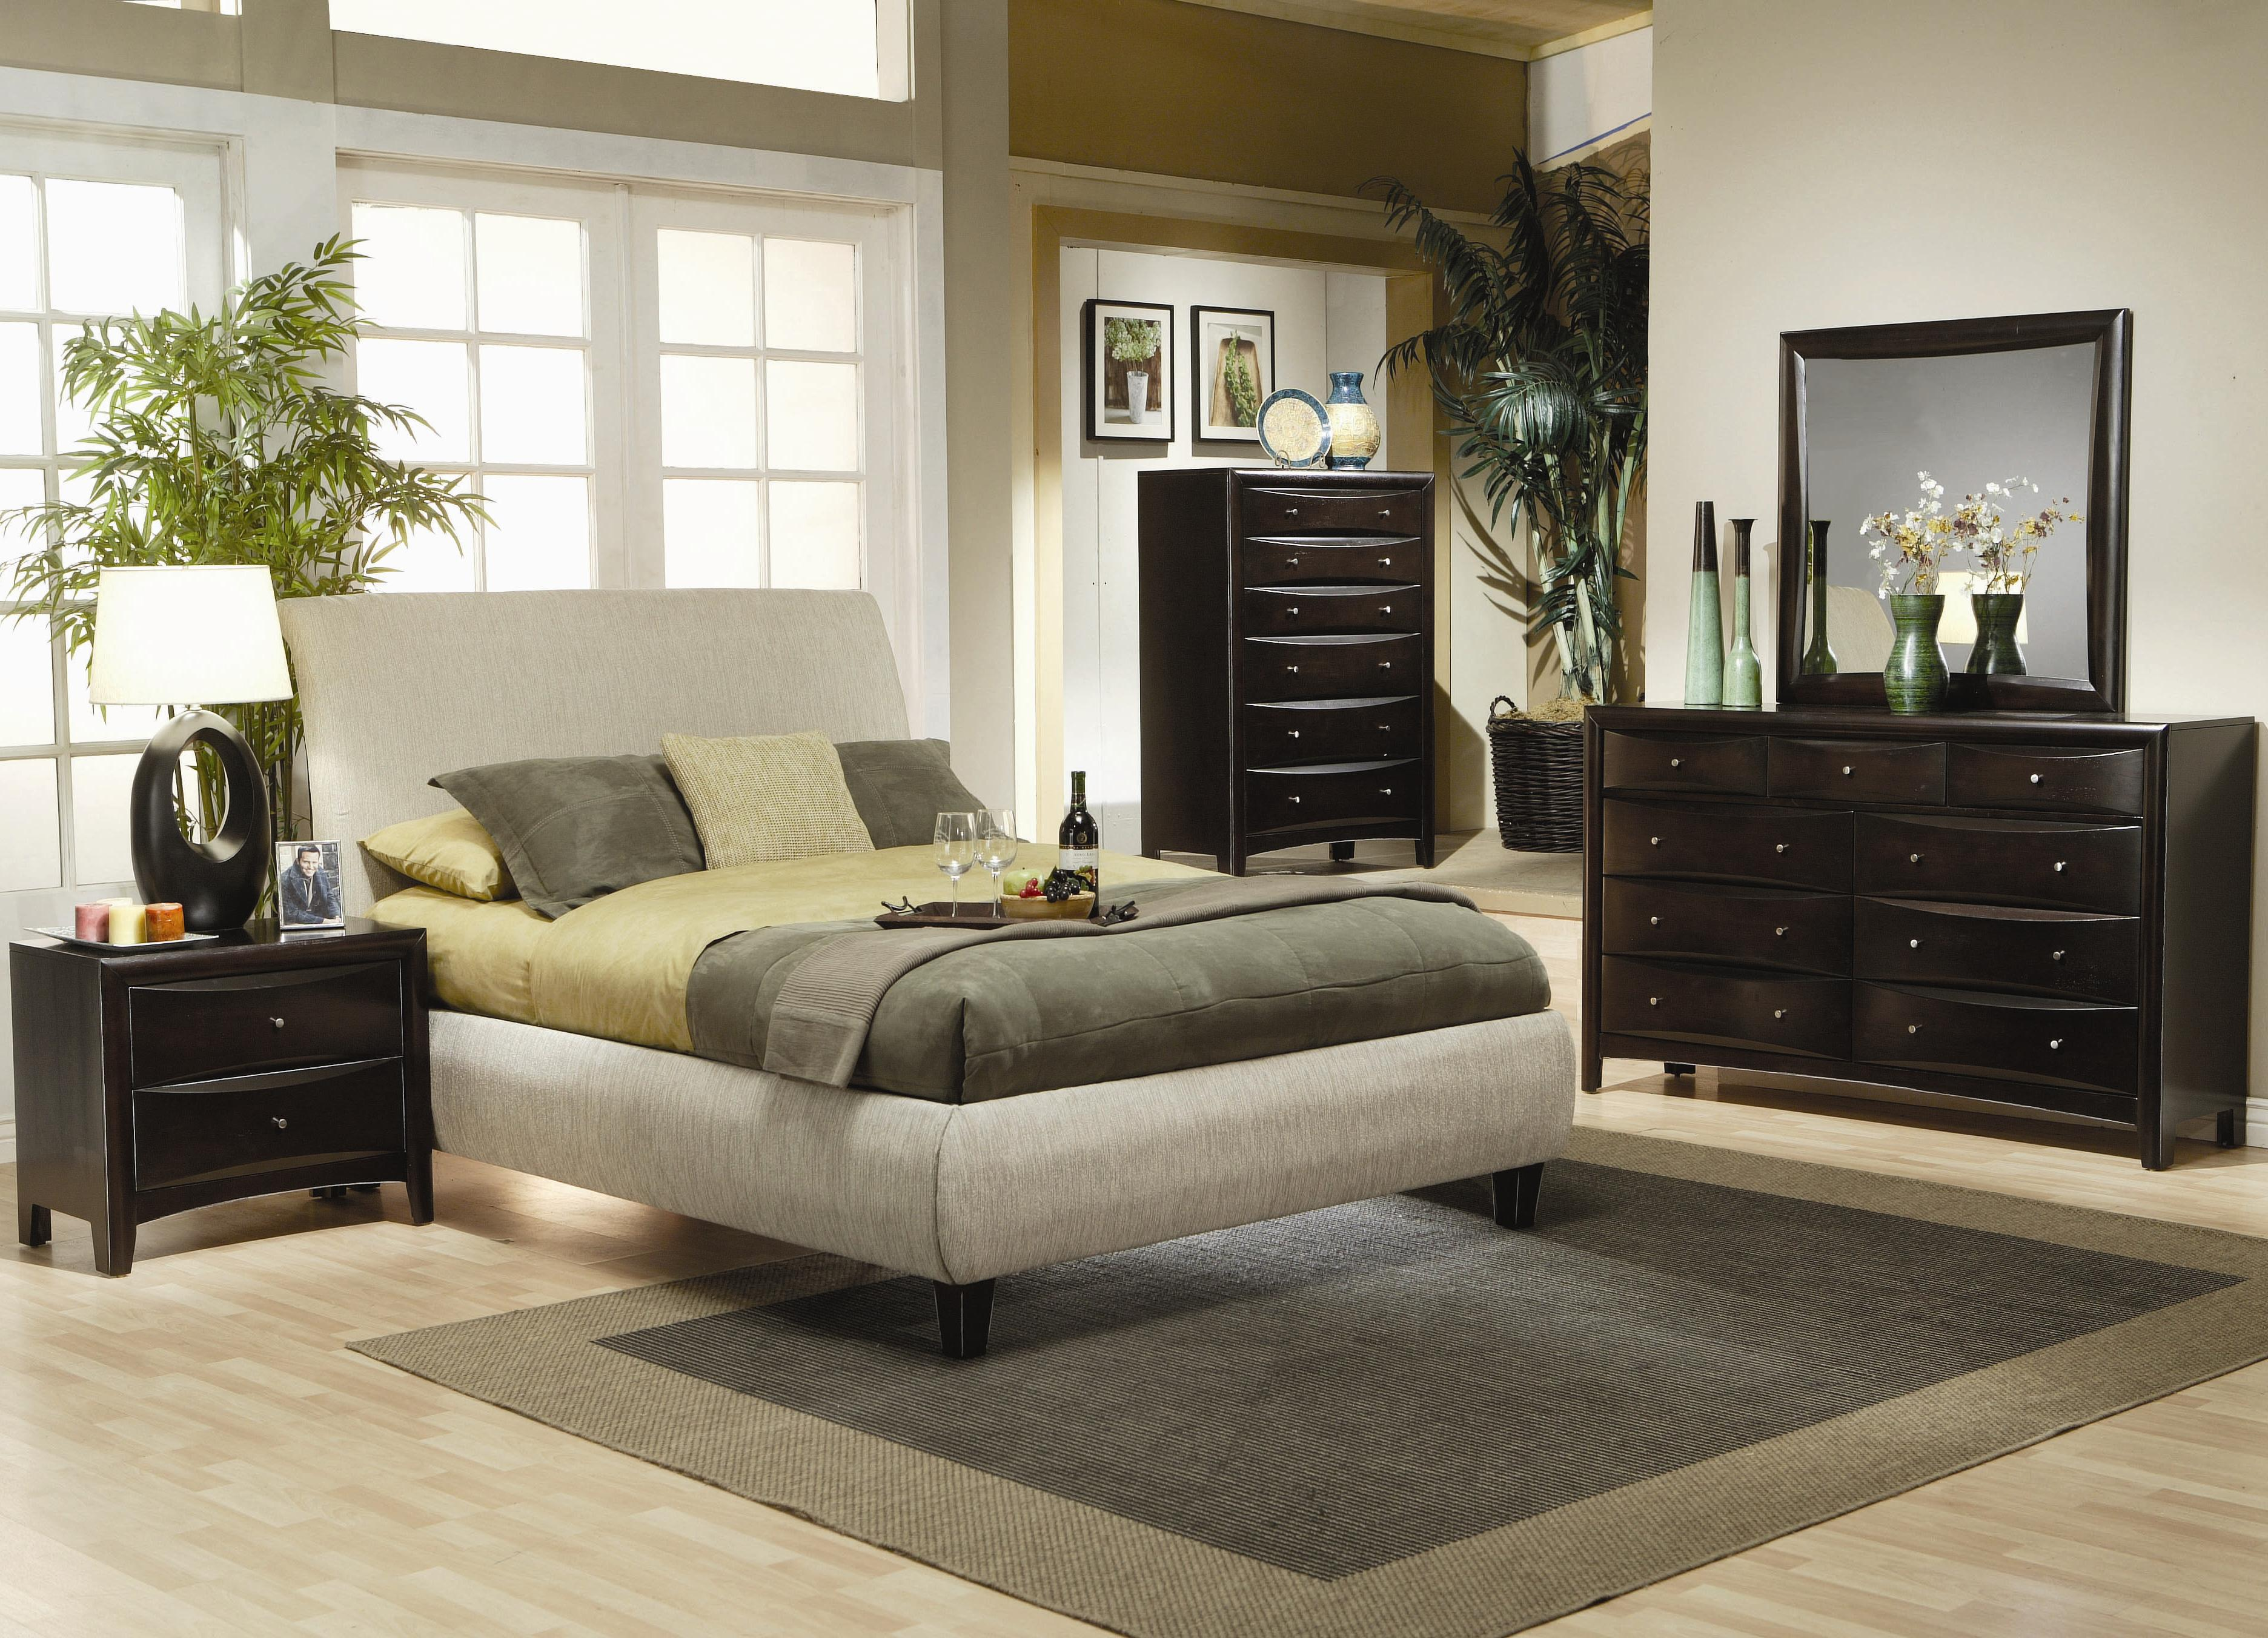 Coaster Phoenix Queen Contemporary Upholstered Bed - Coaster Fine ...